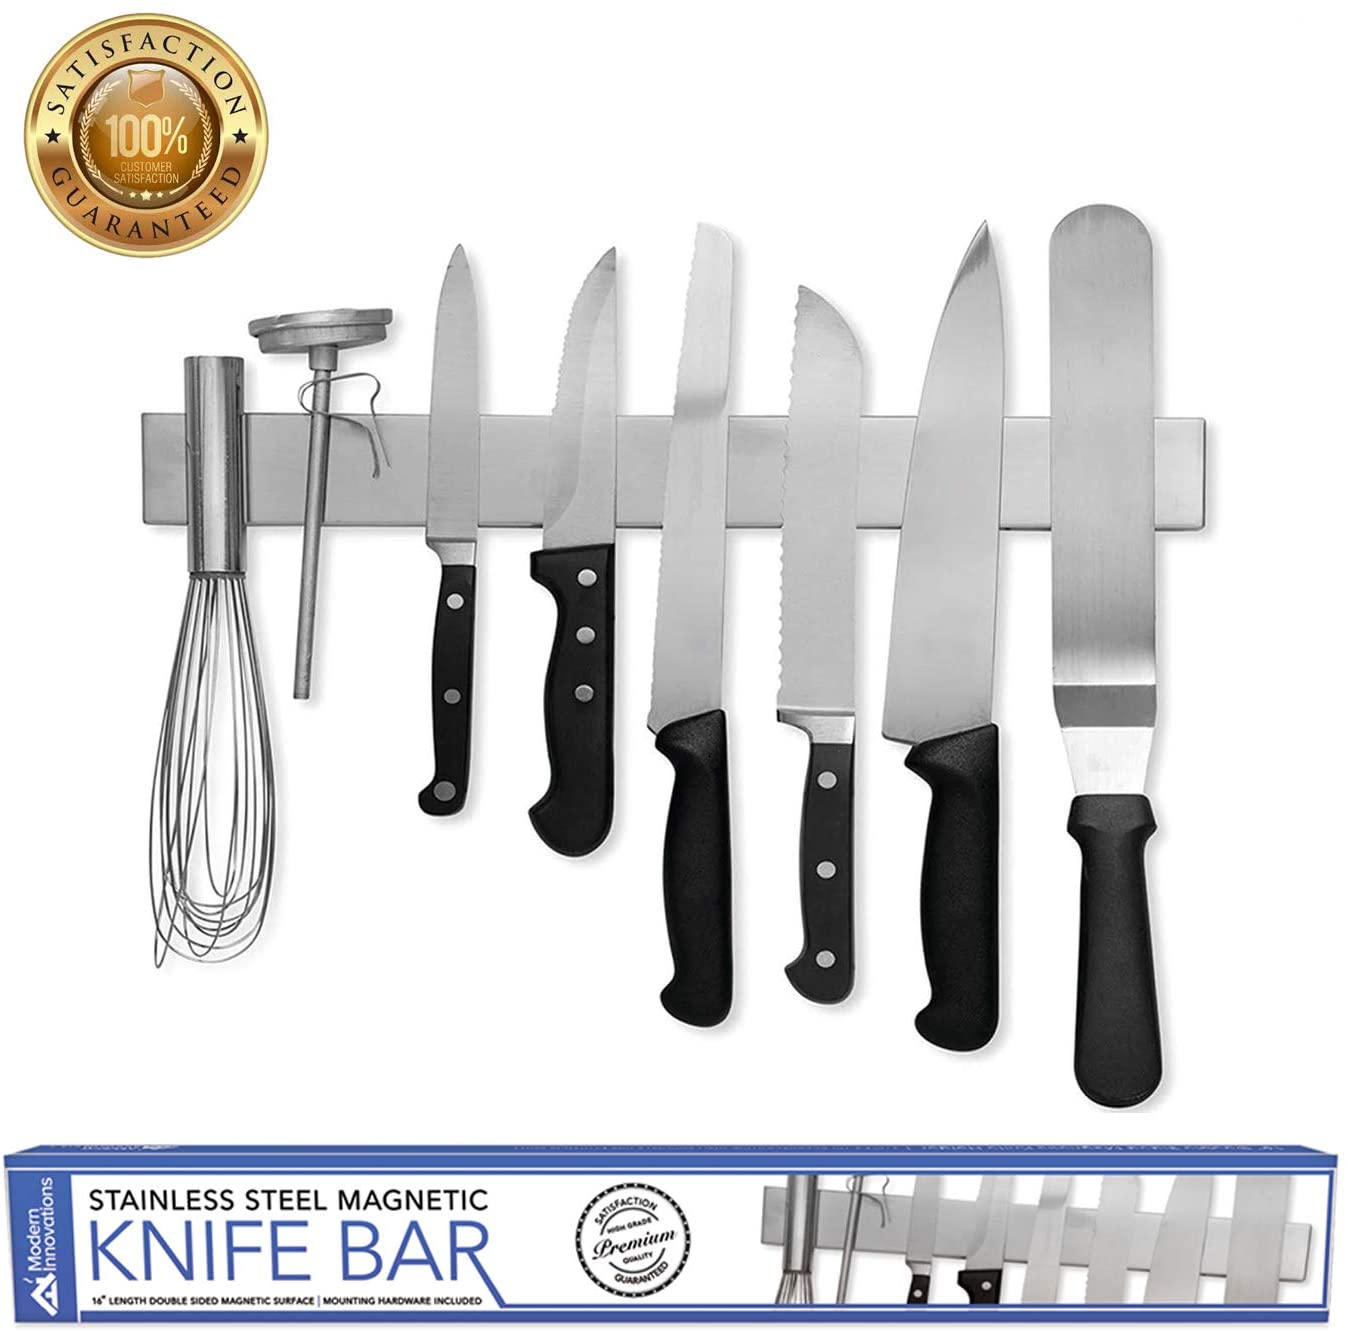 16 Double Sided Magnetic Knife Holder Rack Block Kitchen Bar Organizer 817496023129 Ebay